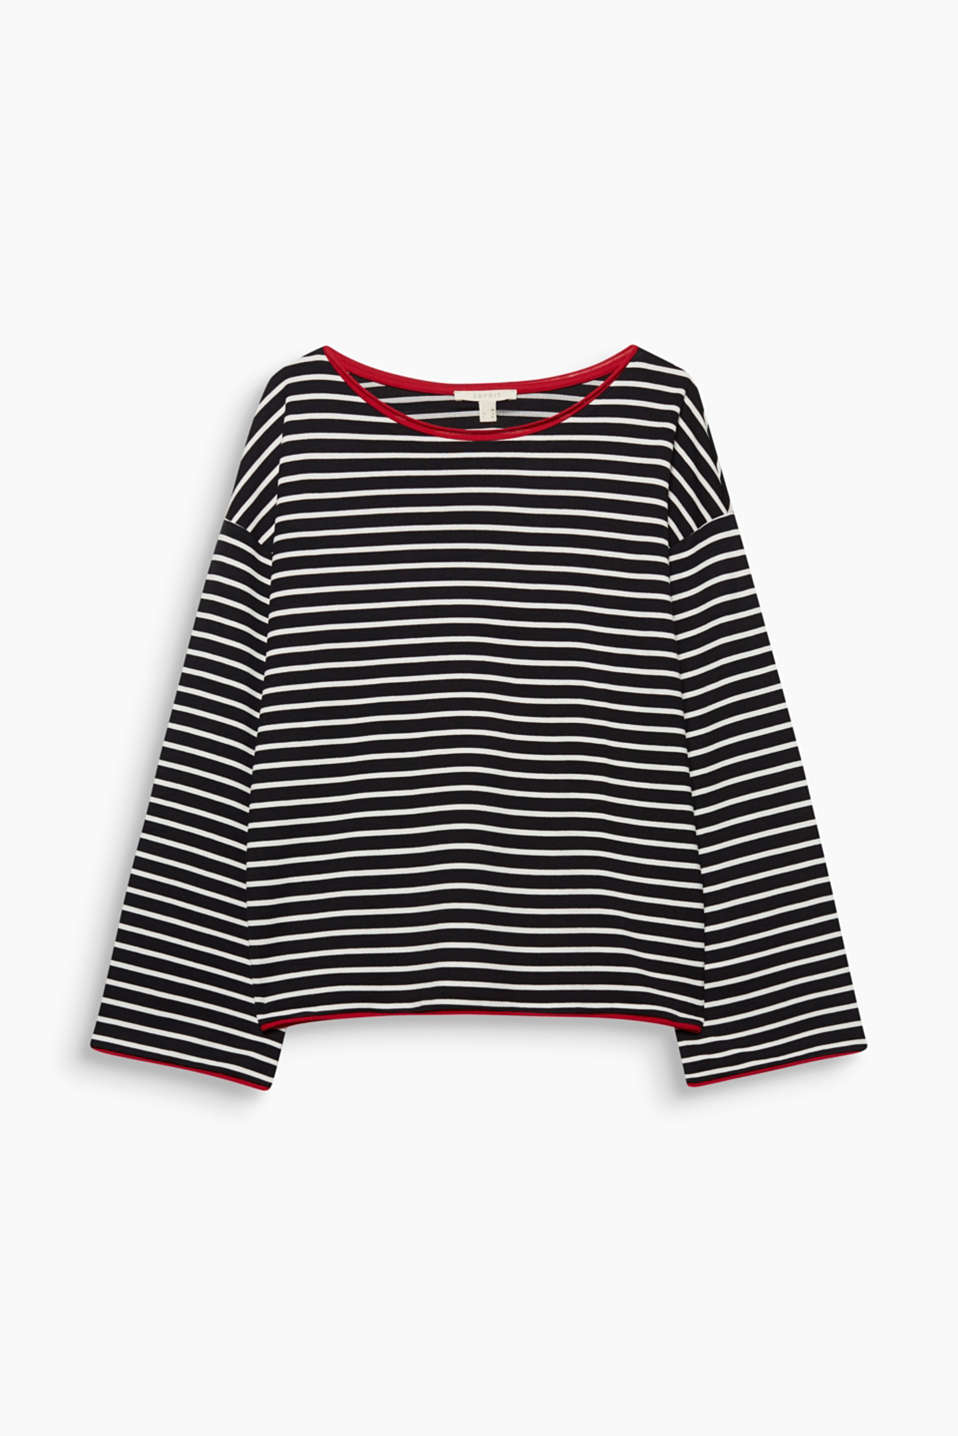 A nautical striped look and rolled edges in a contrasting colour give this long sleeve top its casual vibe.